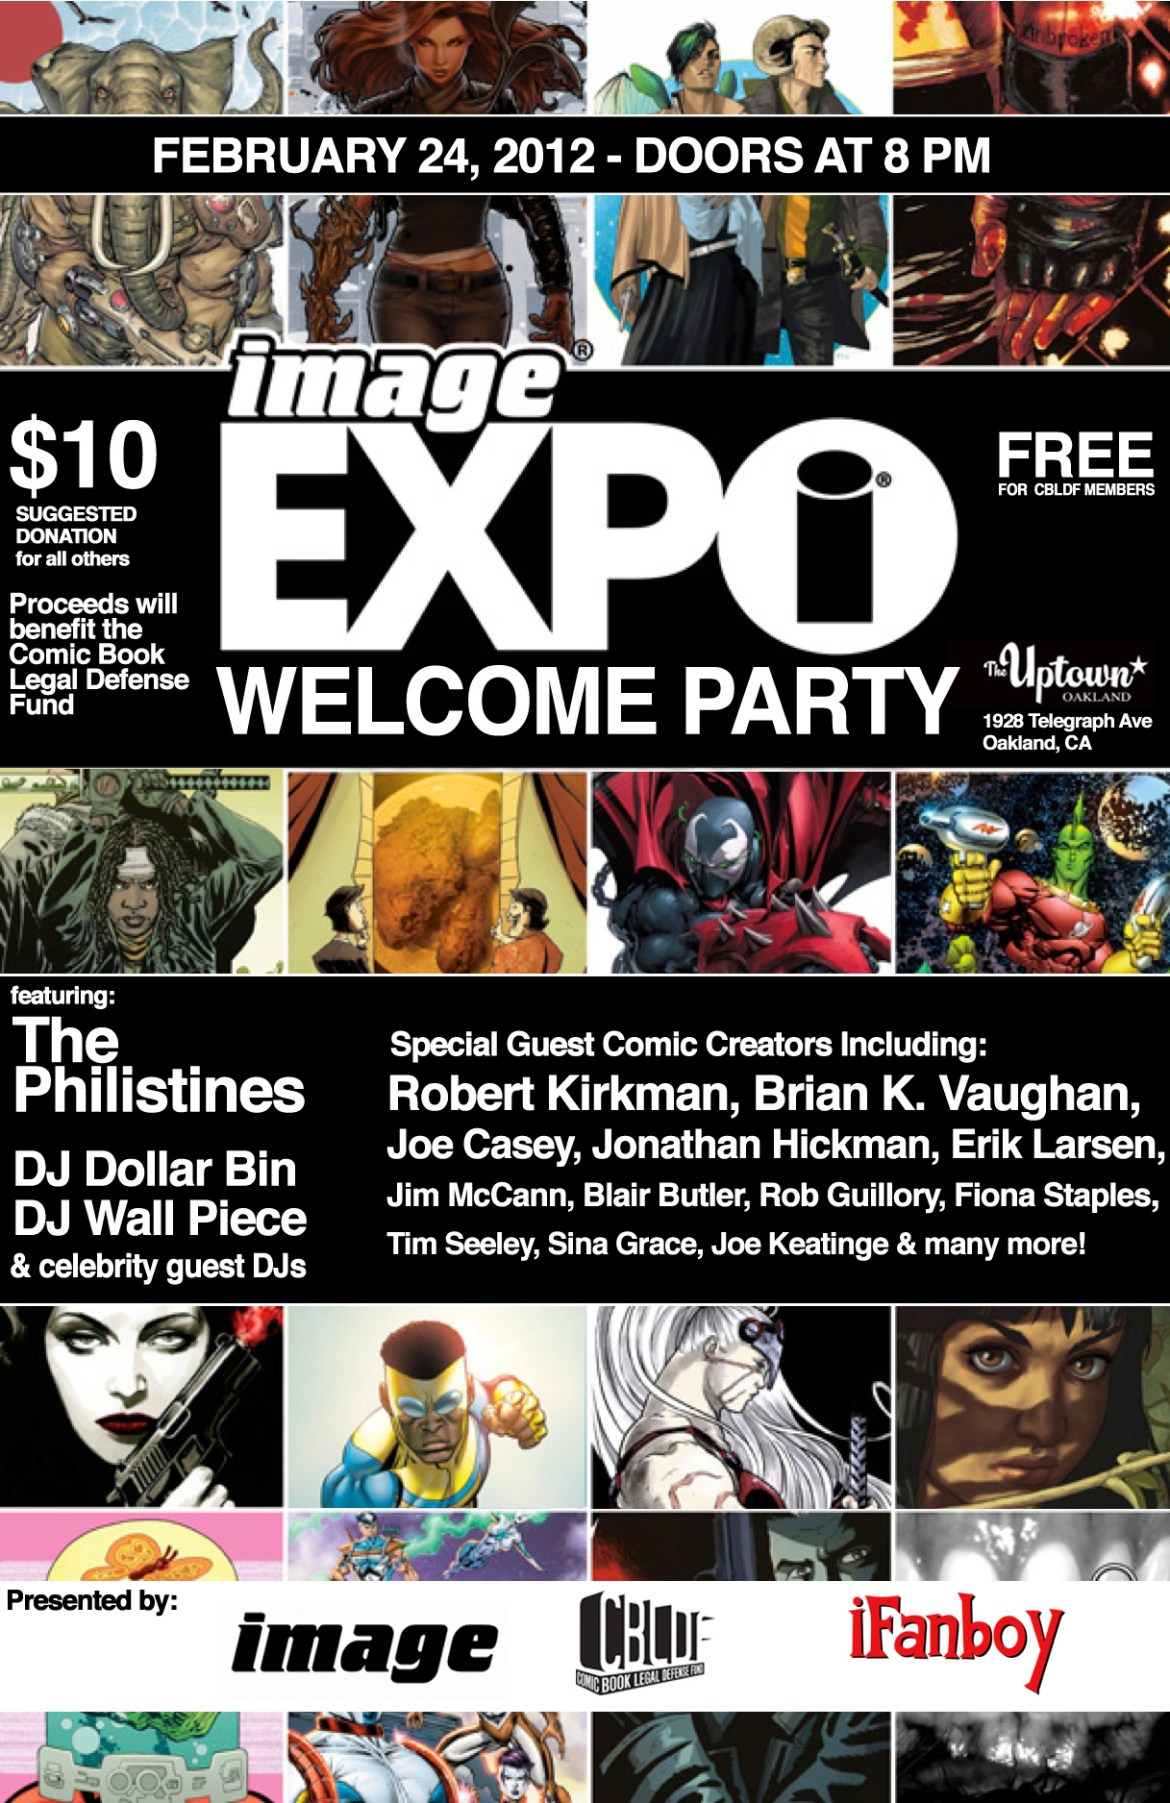 511760485368453 Image Expo Welcome Party to benefit Comic Book Legal Defense Fund